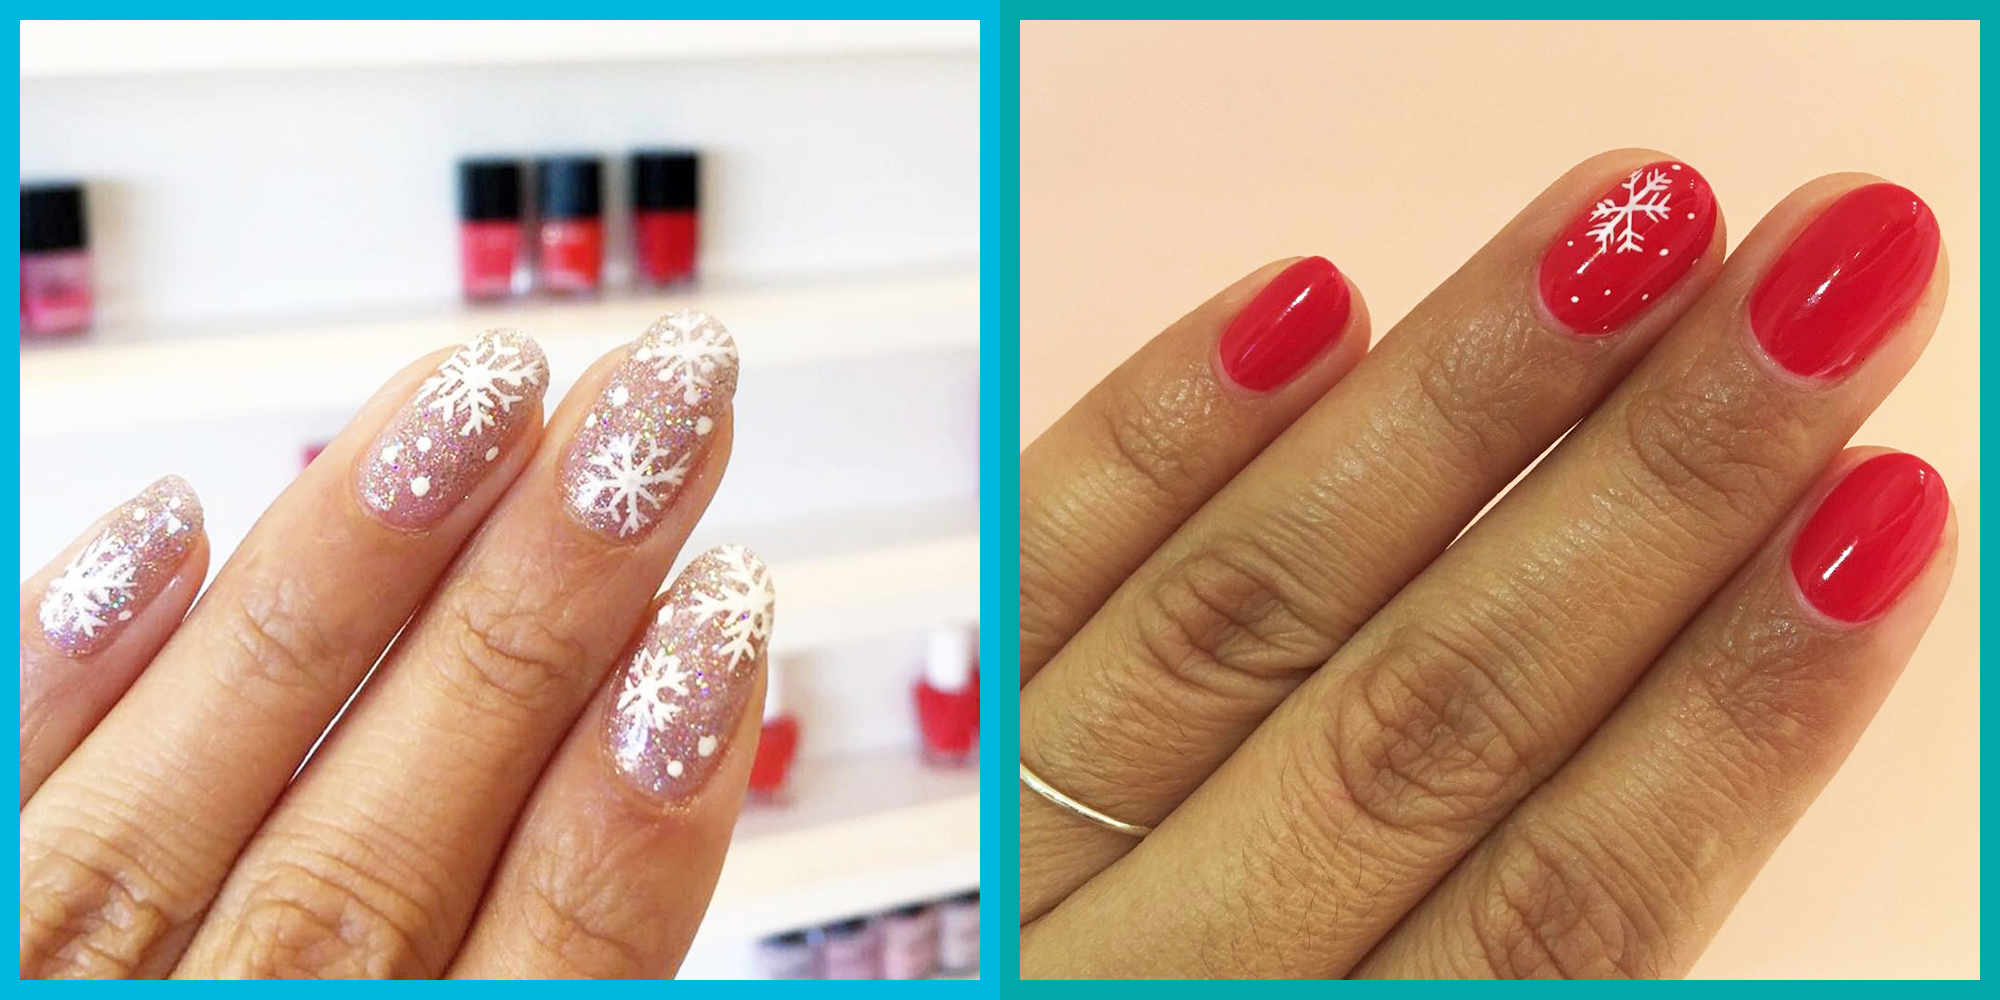 10 Snowflake Nails and Design Ideas to Copy This Winter 2019